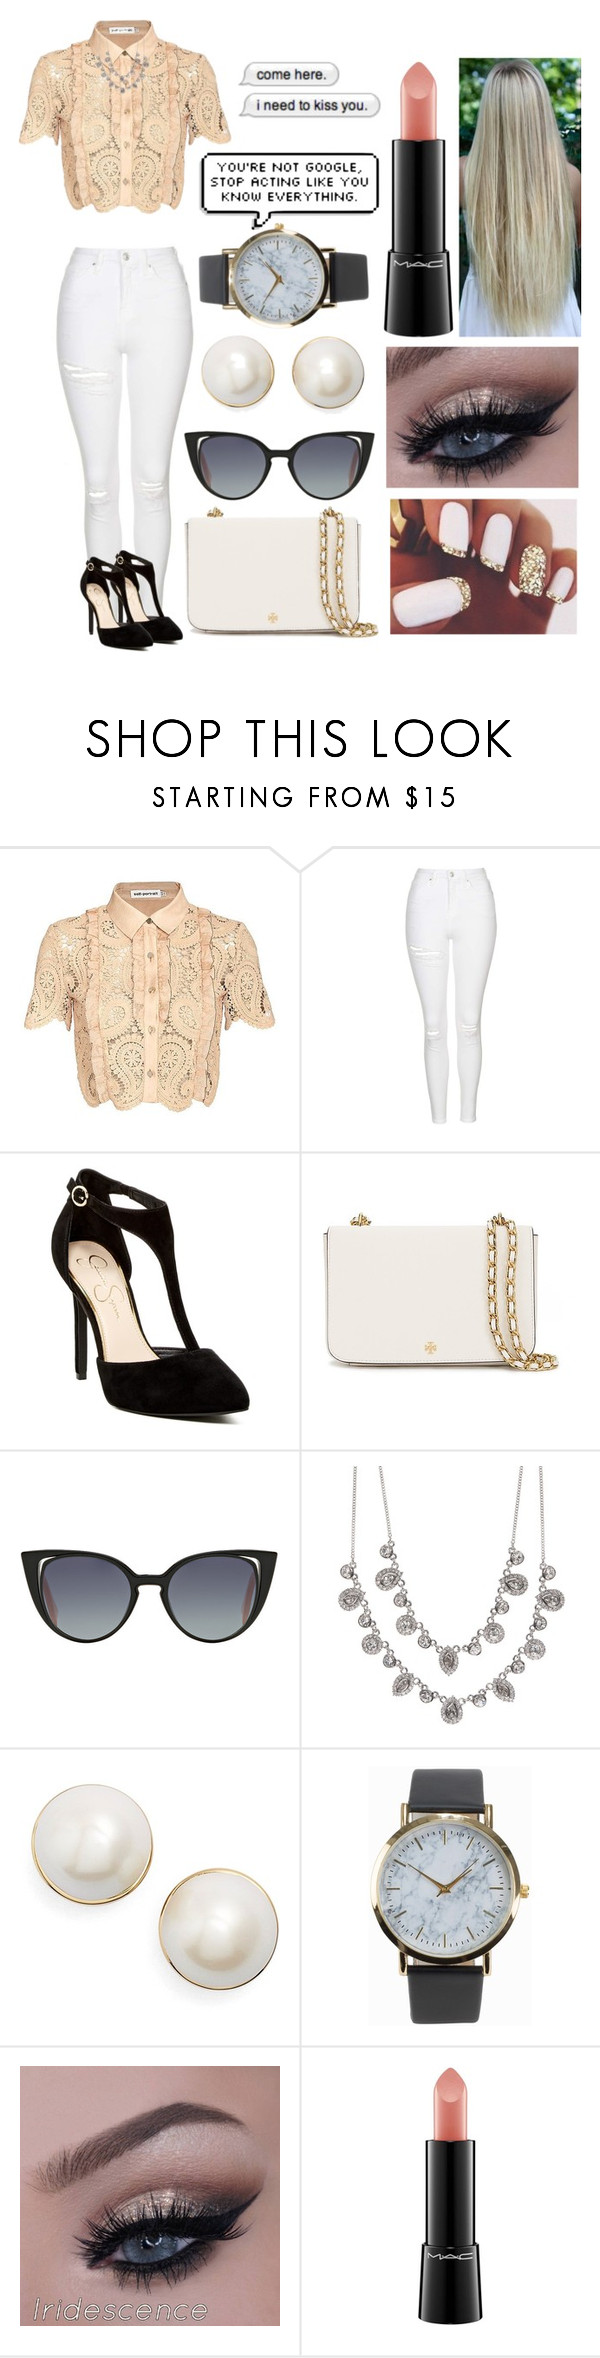 """""""Untitled #518"""" by love-torie on Polyvore featuring self-portrait, Topshop, Jessica Simpson, Tory Burch, Fendi, Givenchy, Kate Spade, NLY Accessories, MAC Cosmetics and Cotton Candy"""